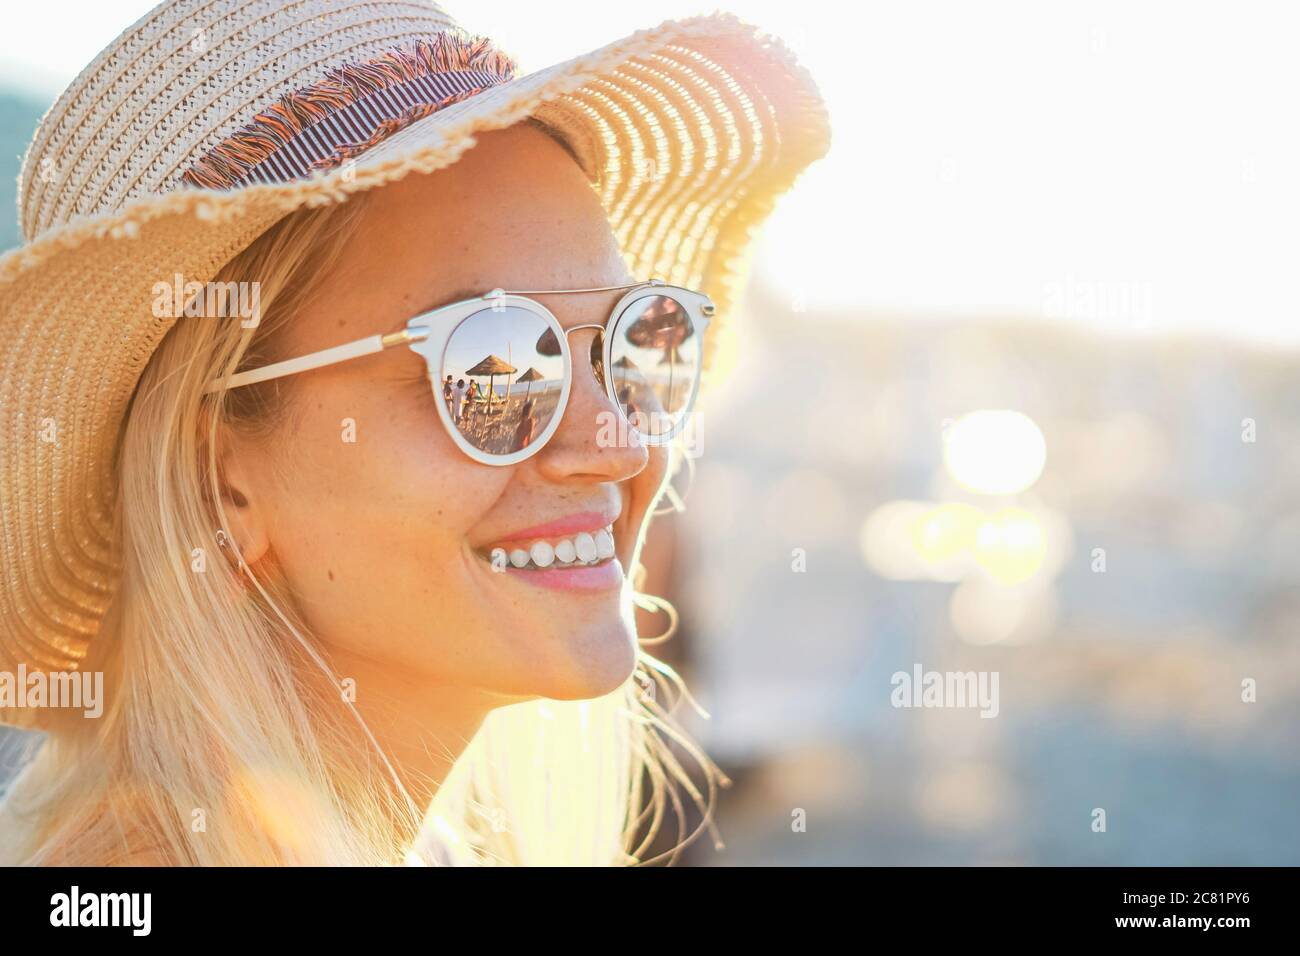 A blonde girl smiling with hat on - Beach and sunlight reflected in sunglasses - Beautiful young women in holidays - Portrait photo Stock Photo